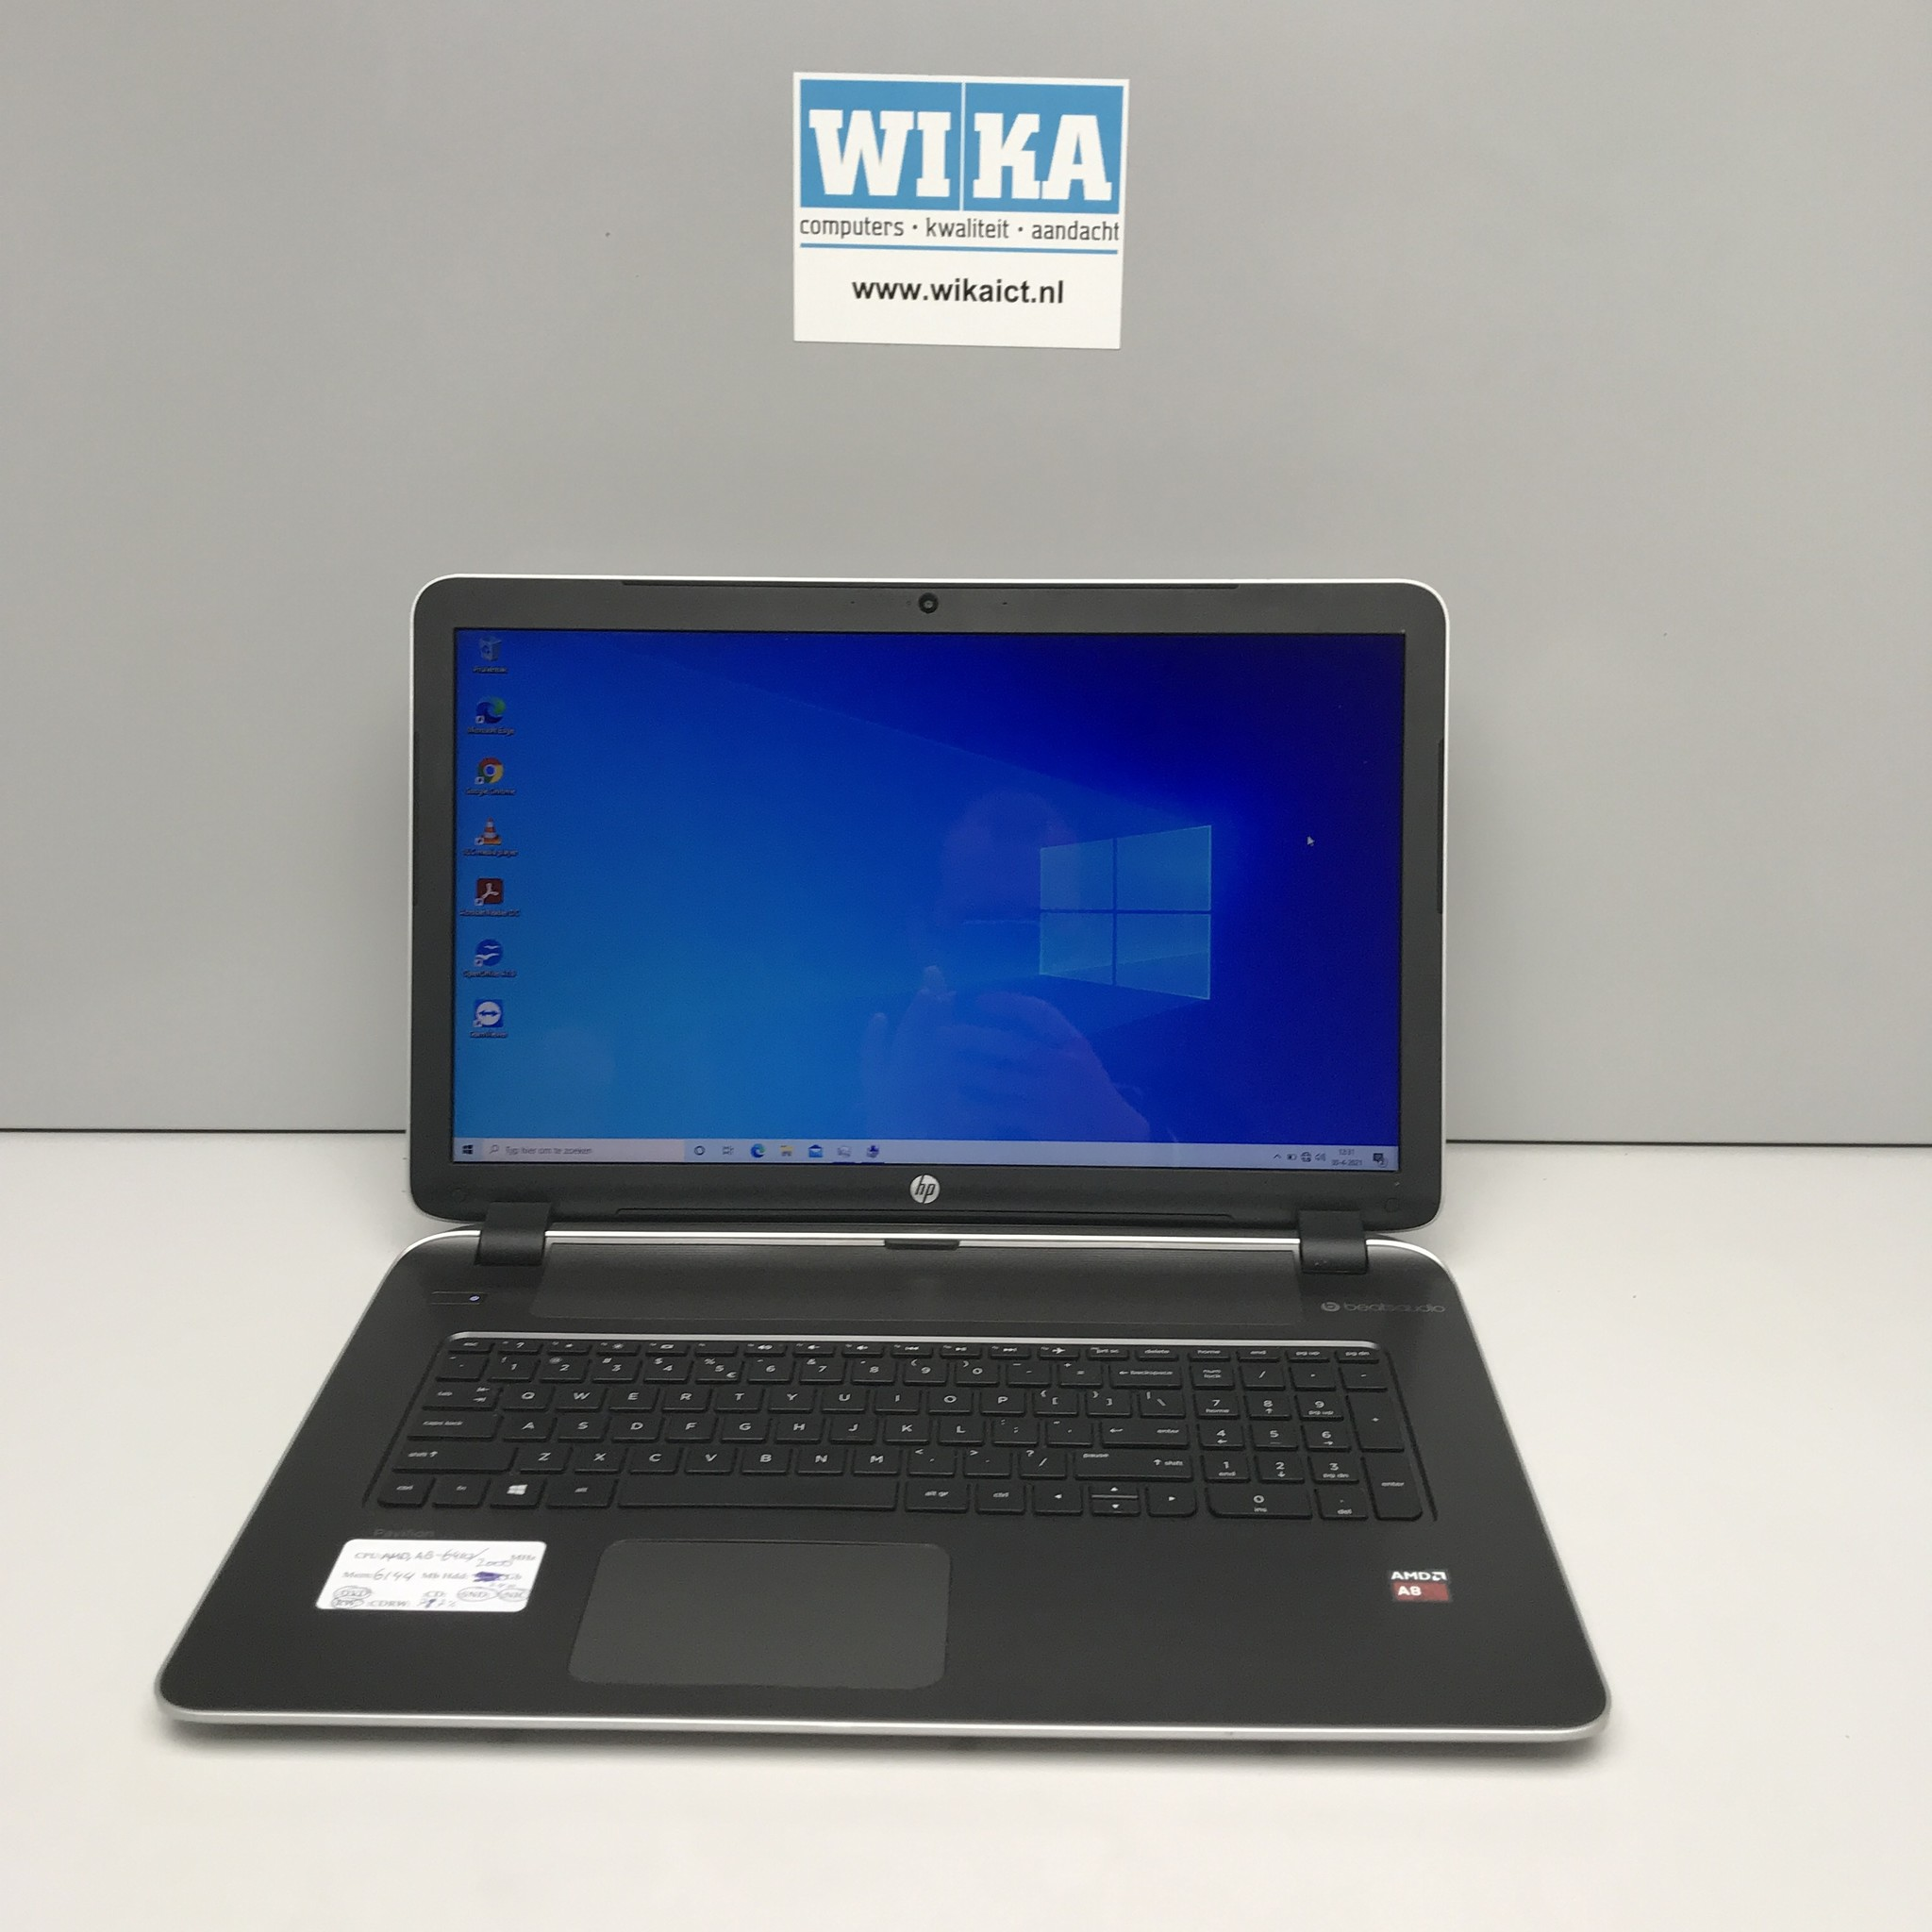 HP Pavilion 17 A8 6Gb 240Gb SSD 17.3 inch laptop